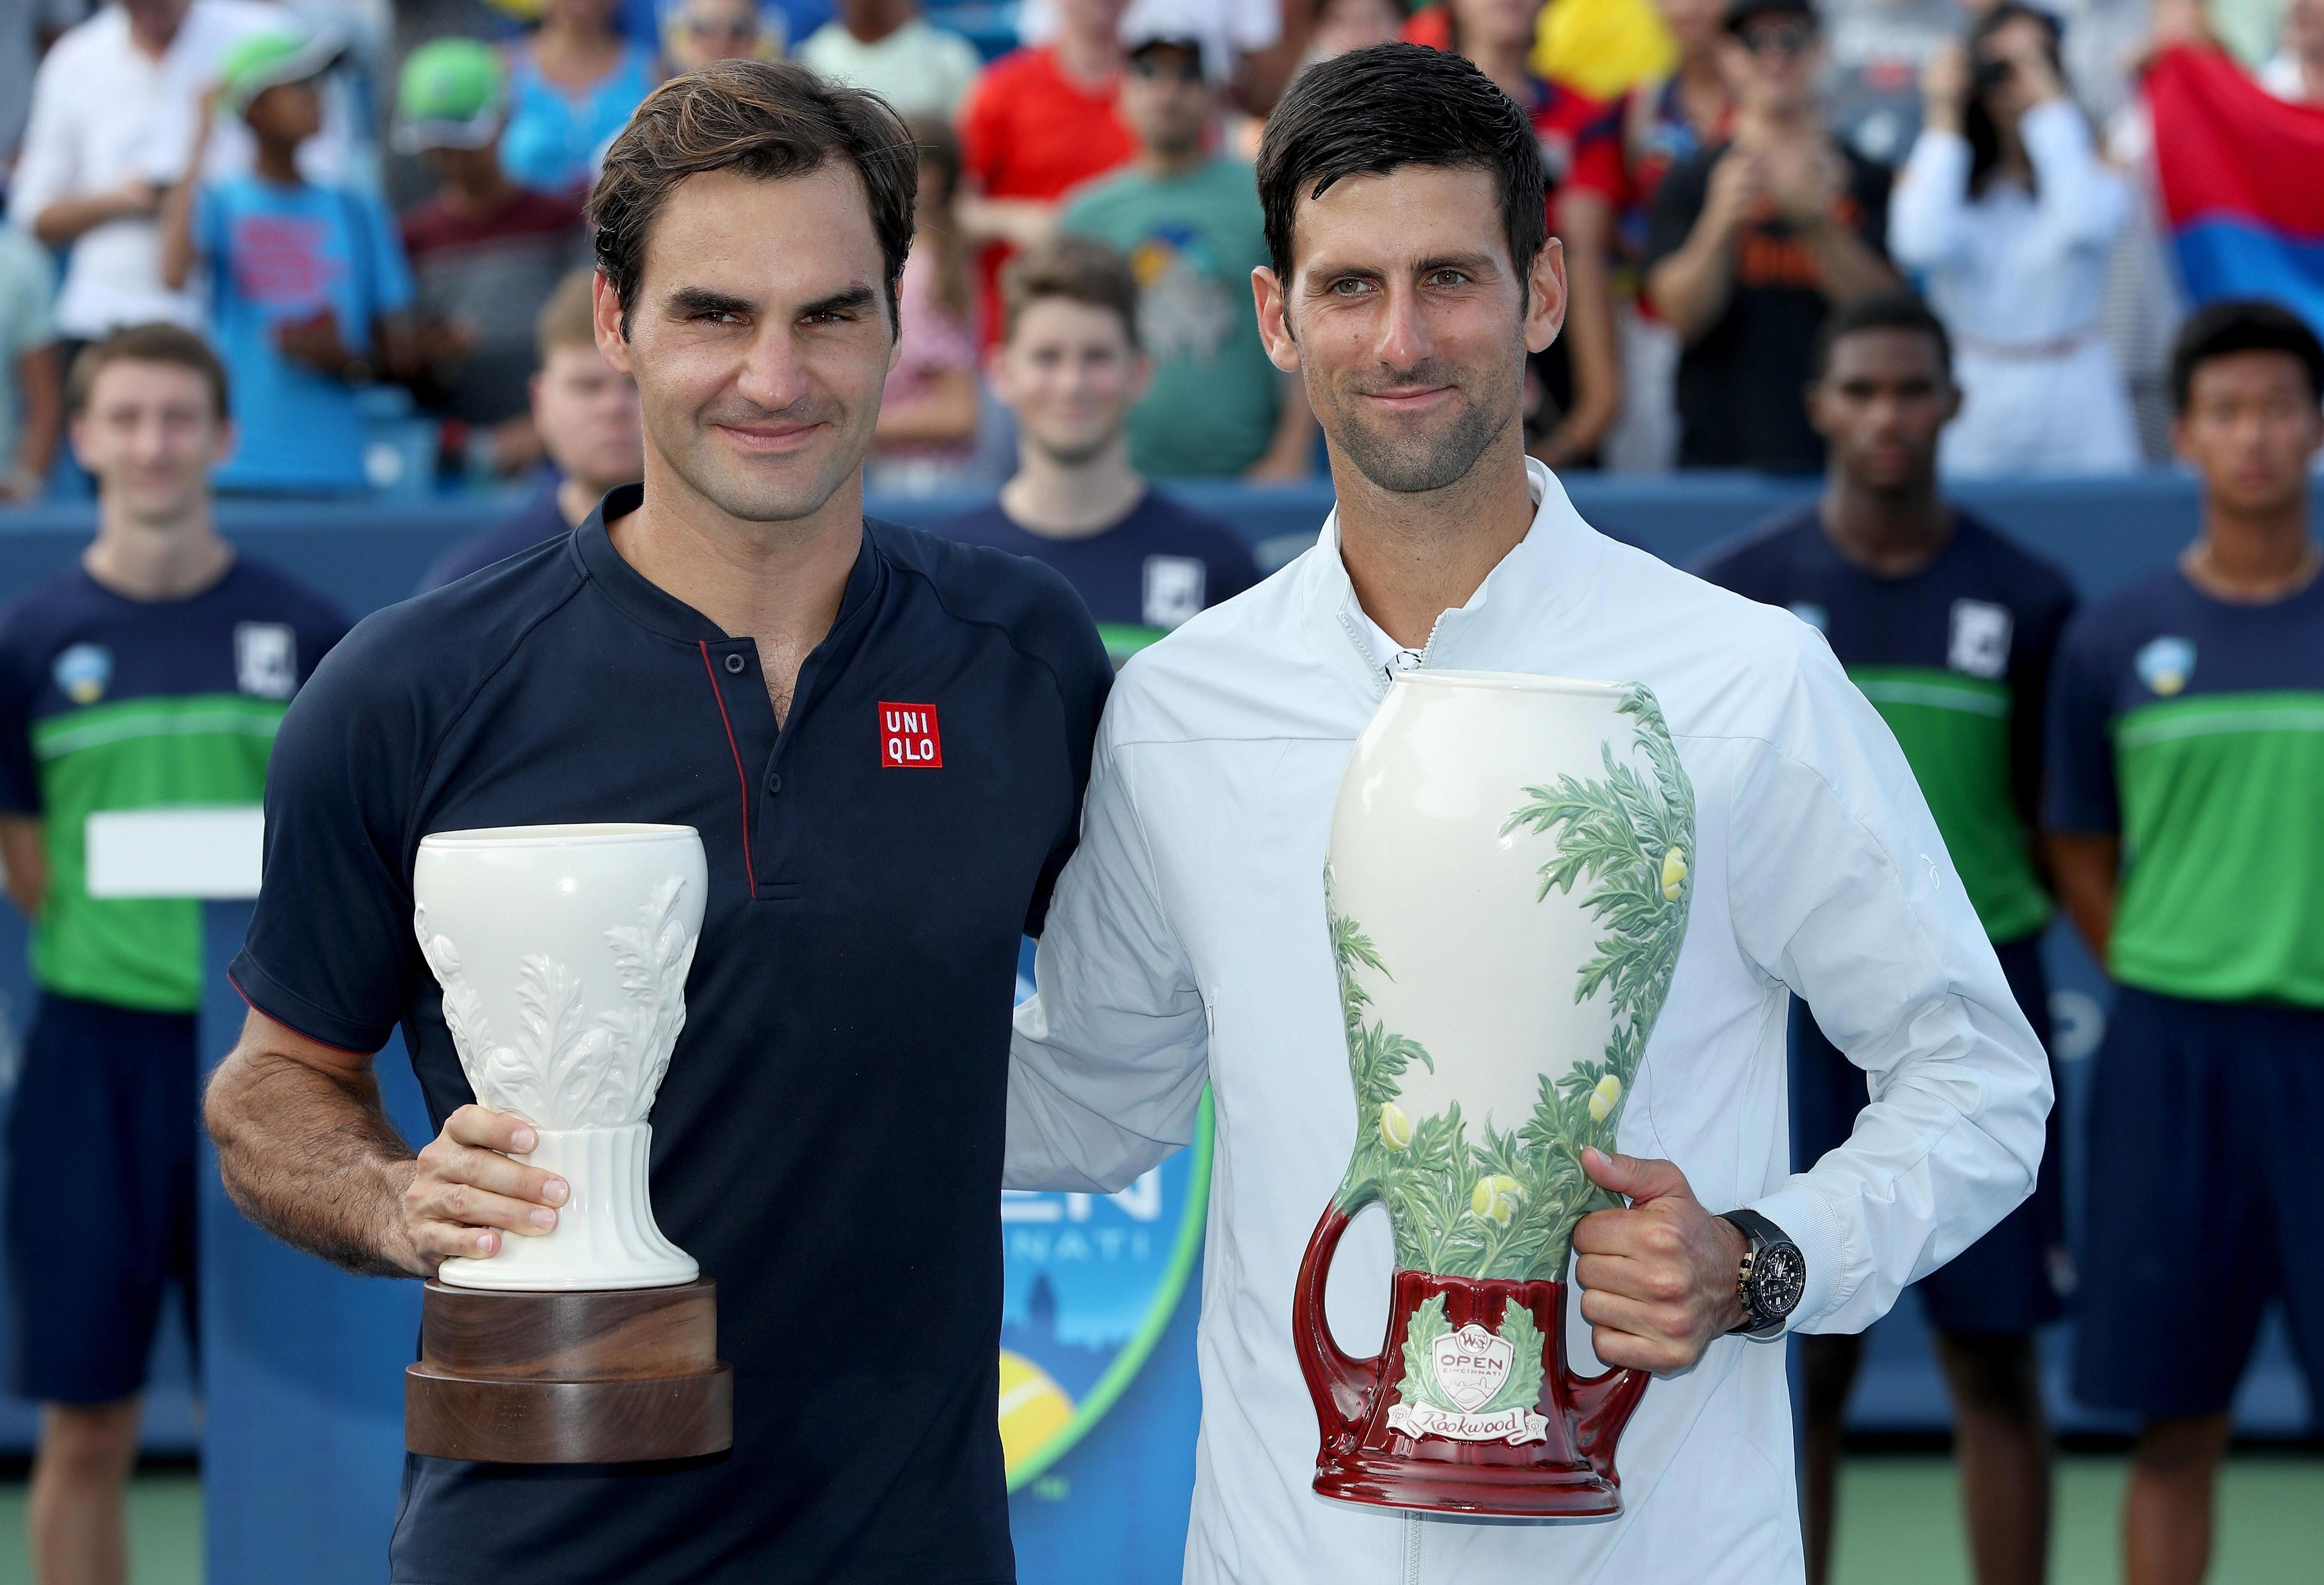 Djokovic and Federer have met 46 times, most recently in the Cincinnati Open final last month